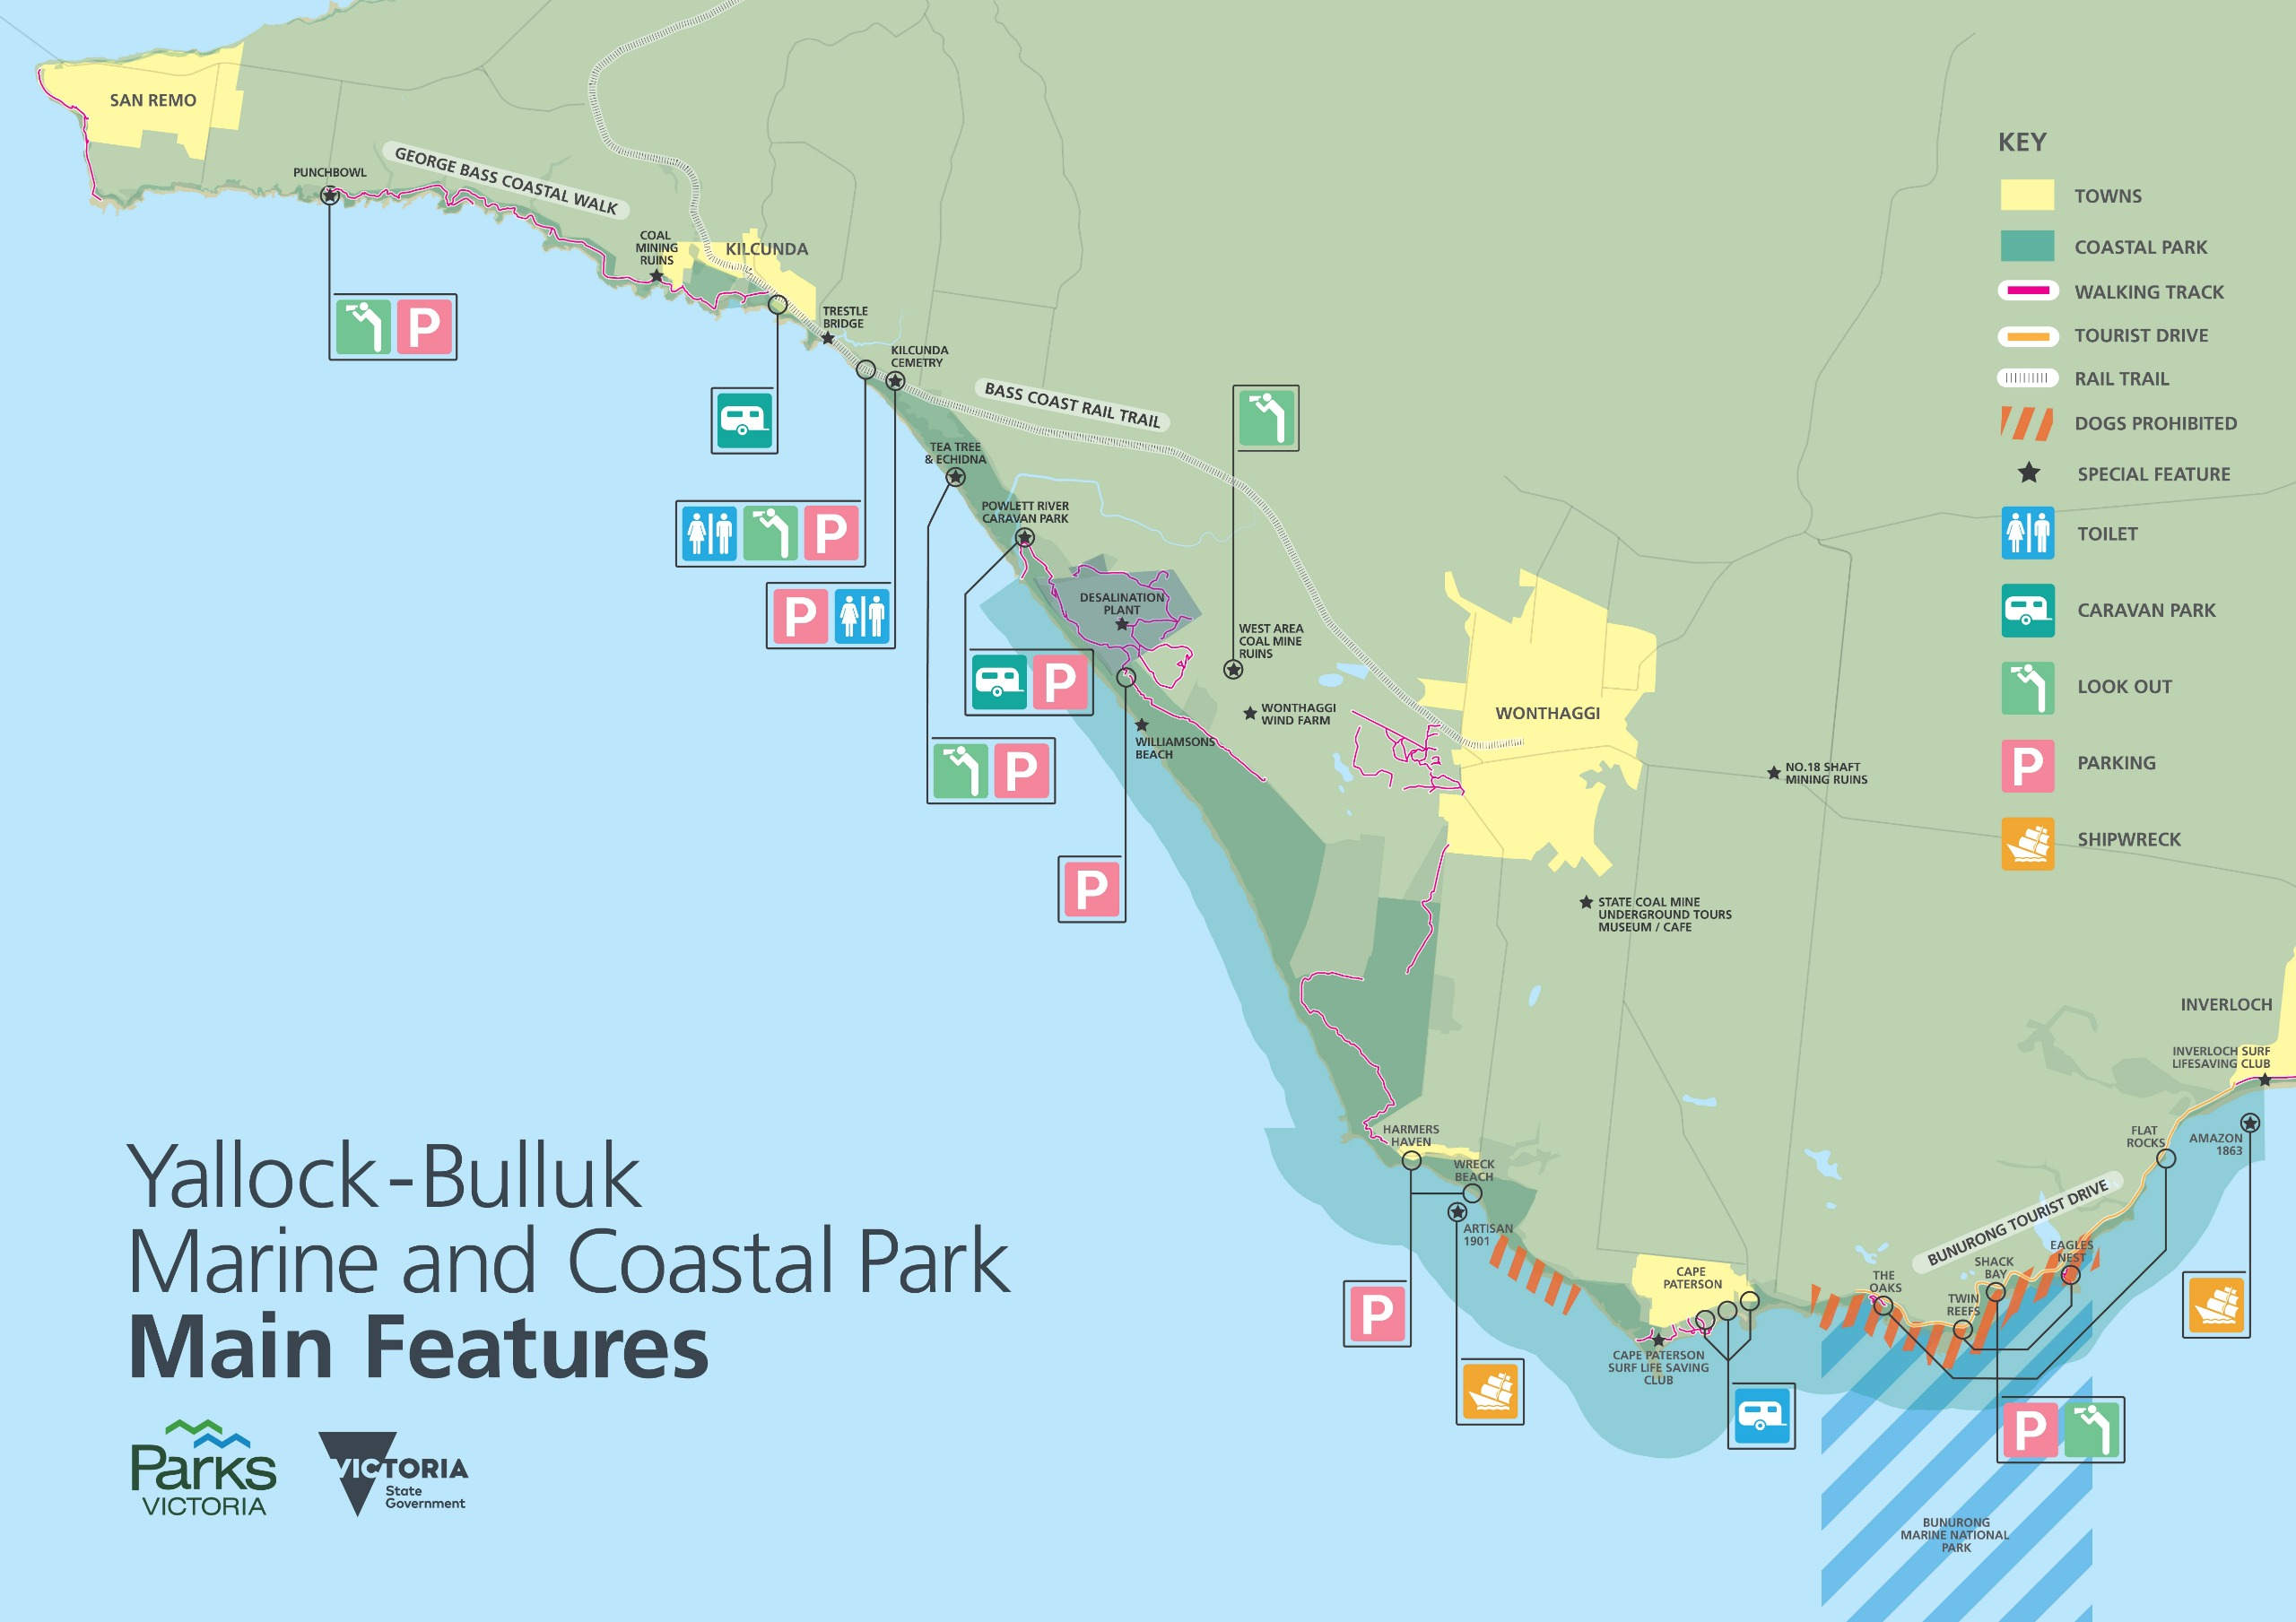 Map of coastline from San Remo to Inverloch. From west to east, this includes: San Remo; Punchbowl (look out, parking); George Bass Coastal Walk; Coal Mining Ruins; Kilcunda (Caravan Park); Trestle Bridge; Bass Coast Rail Trail (toilets, lookout and parki